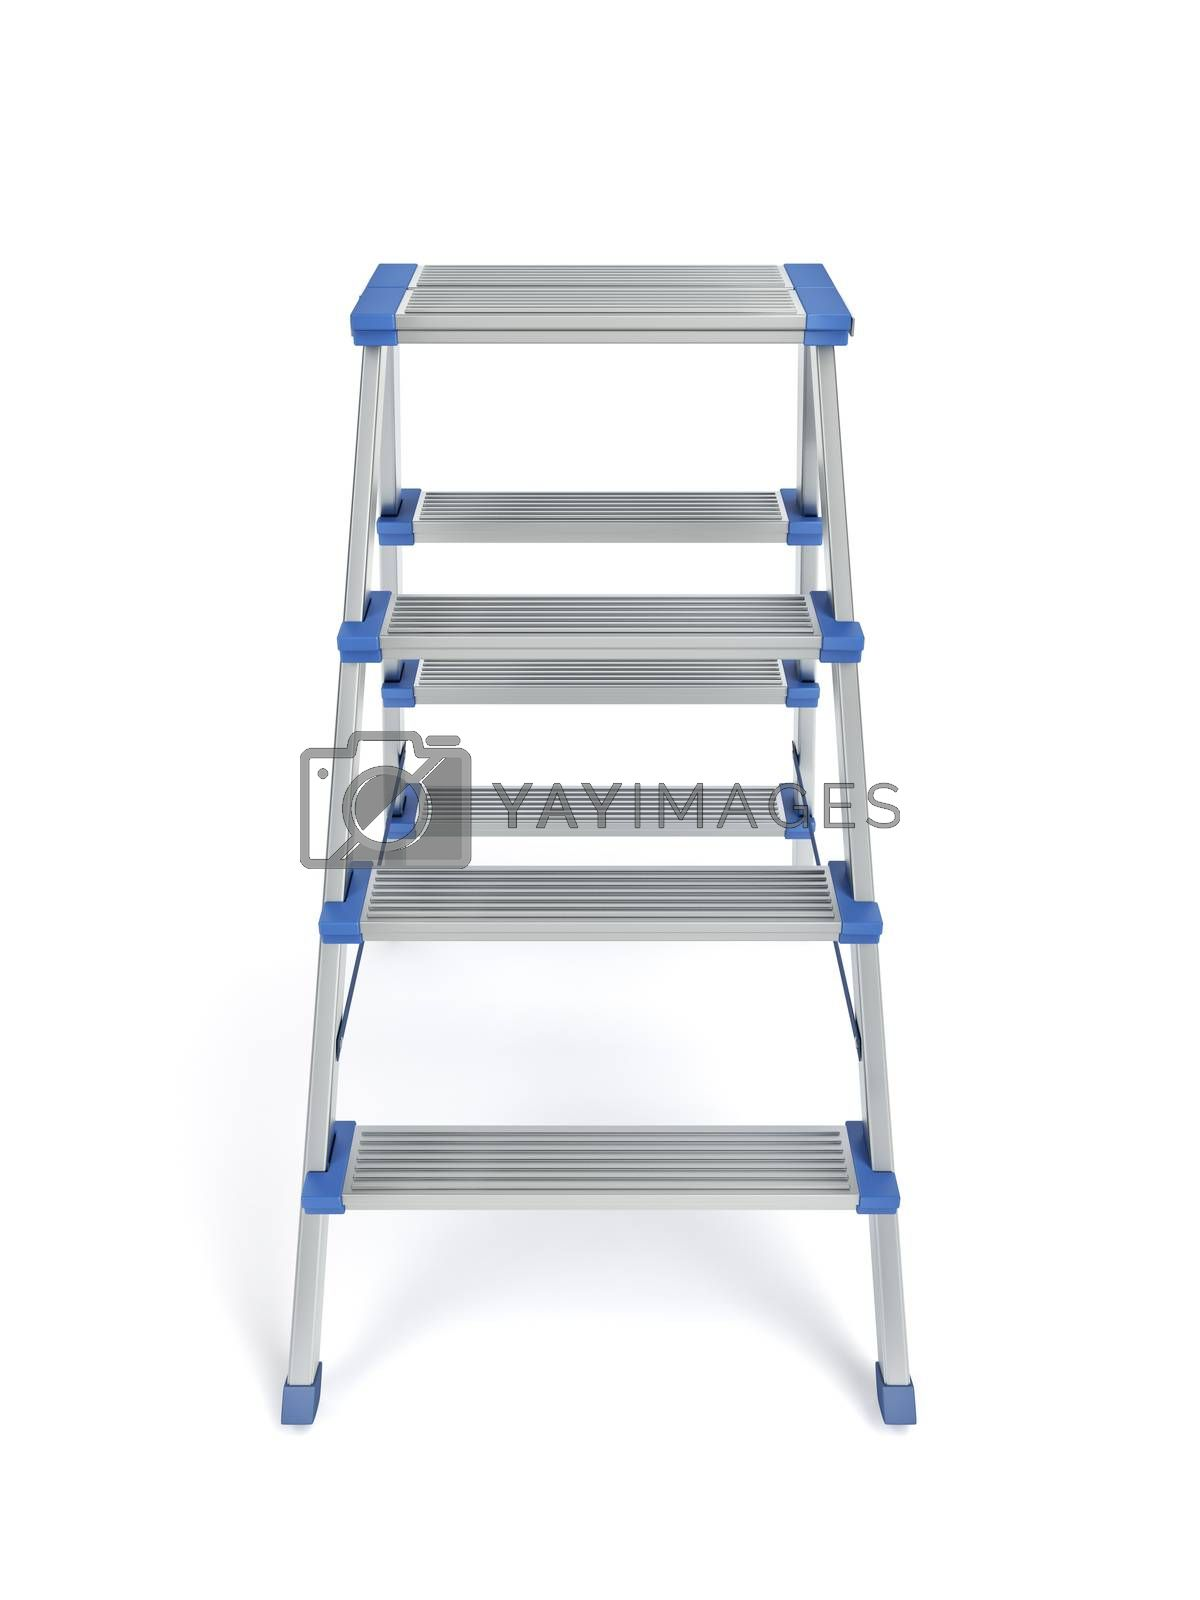 Small aluminum ladder on white background